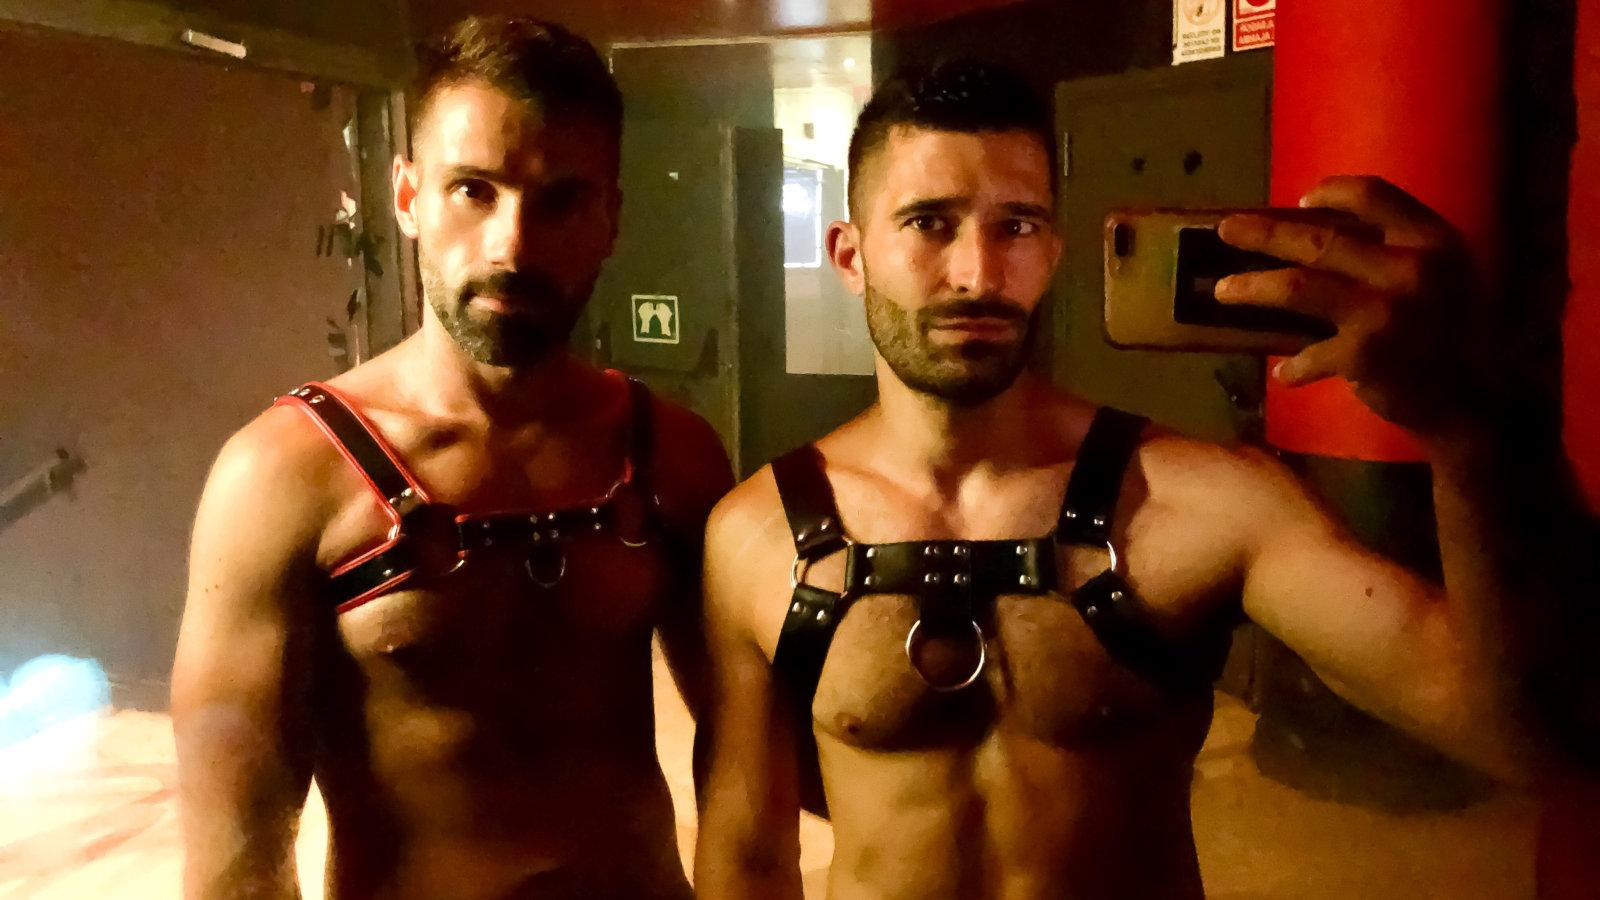 Wearing our harnesses at Theatron gay club in Bogota